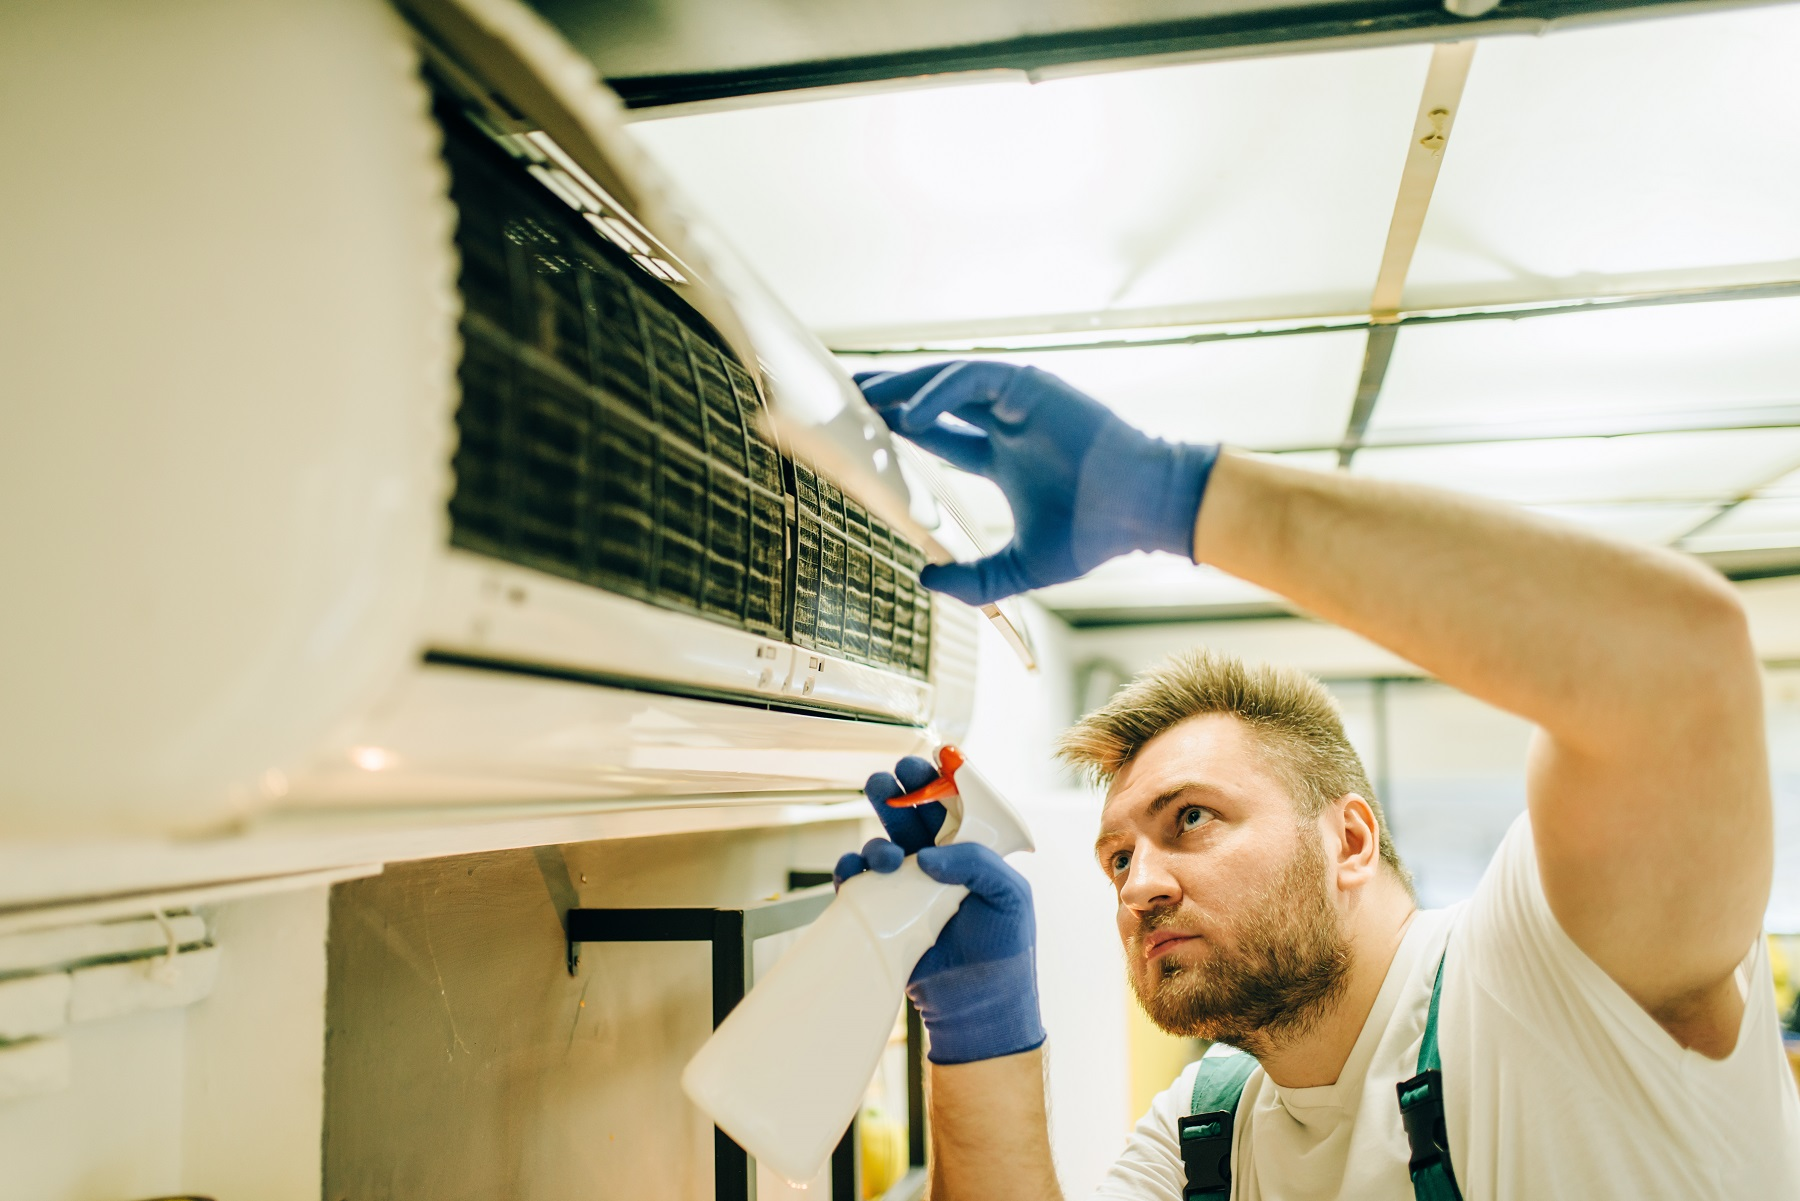 repairman-in-uniform-cleans-the-air-conditioner-3ZHES5W